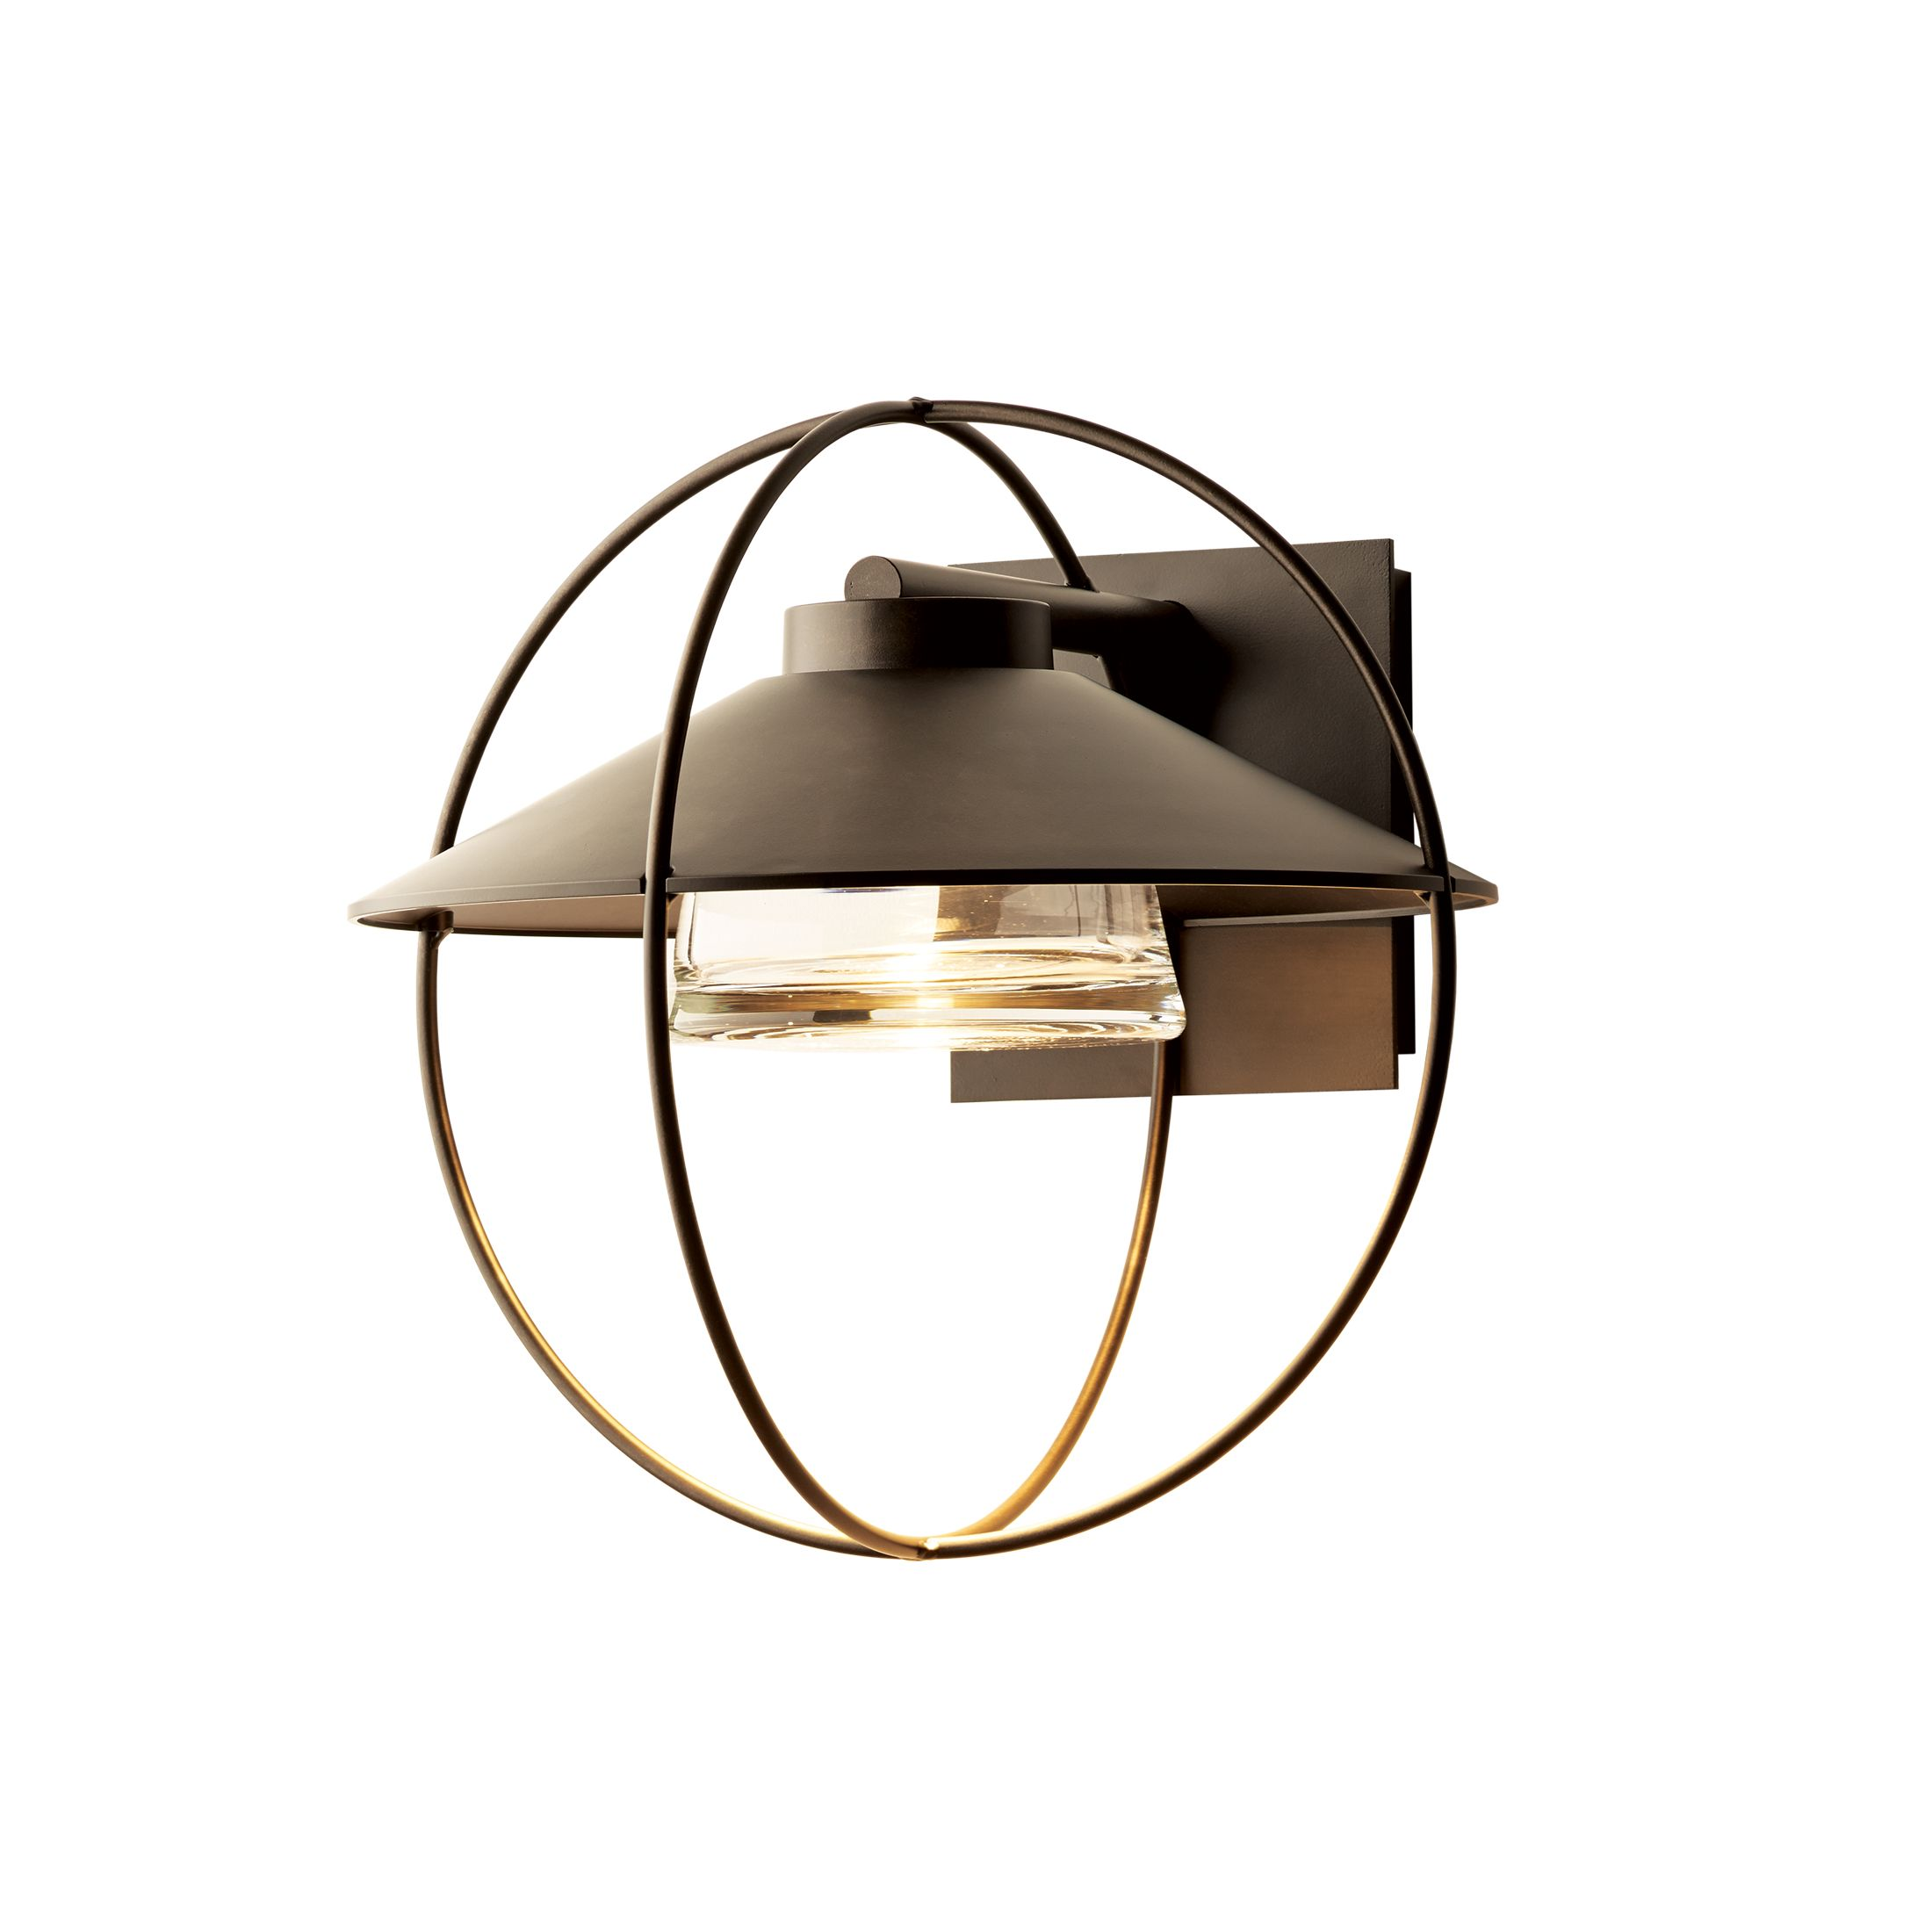 Halo Outdoor Lighting Halo small outdoor sconce hubbardton forge product detail halo small outdoor sconce workwithnaturefo